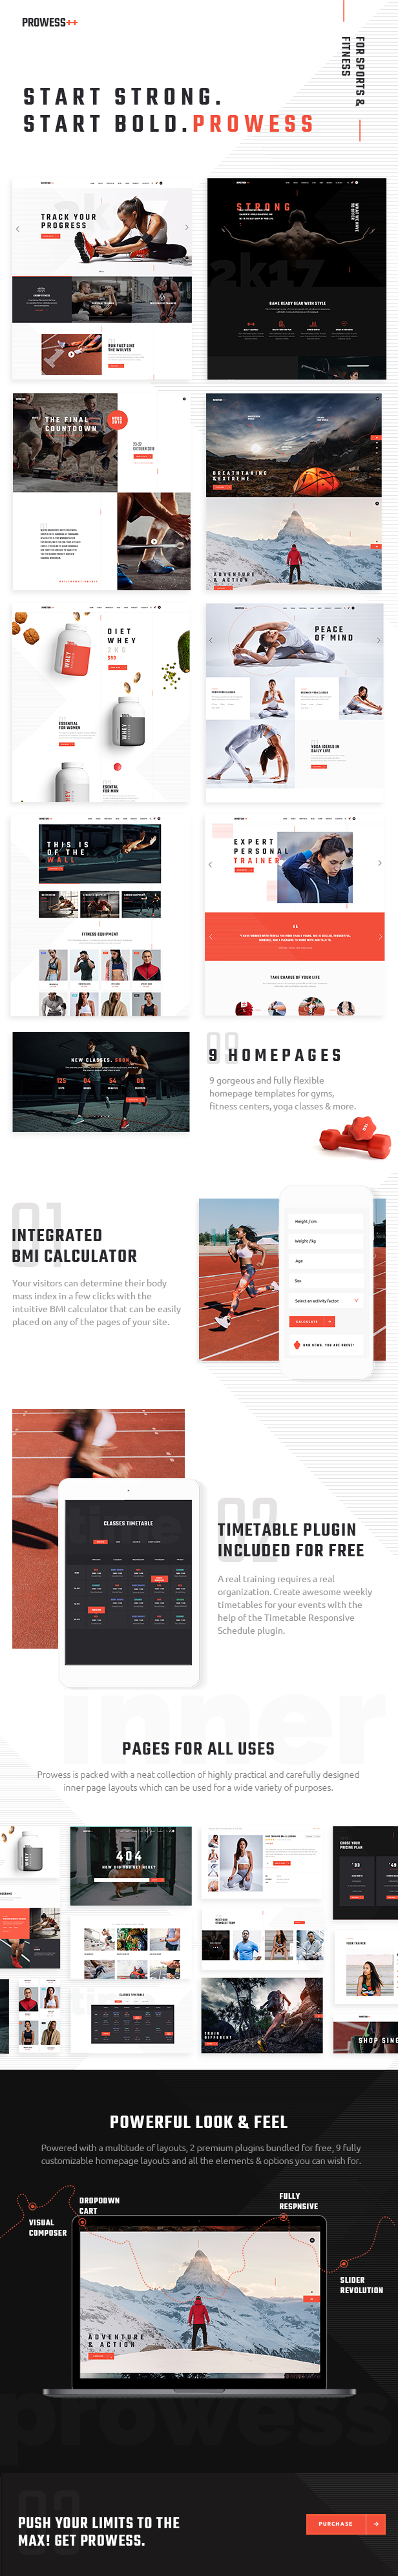 Prowess - Fitness and Gym WordPress Theme - 1